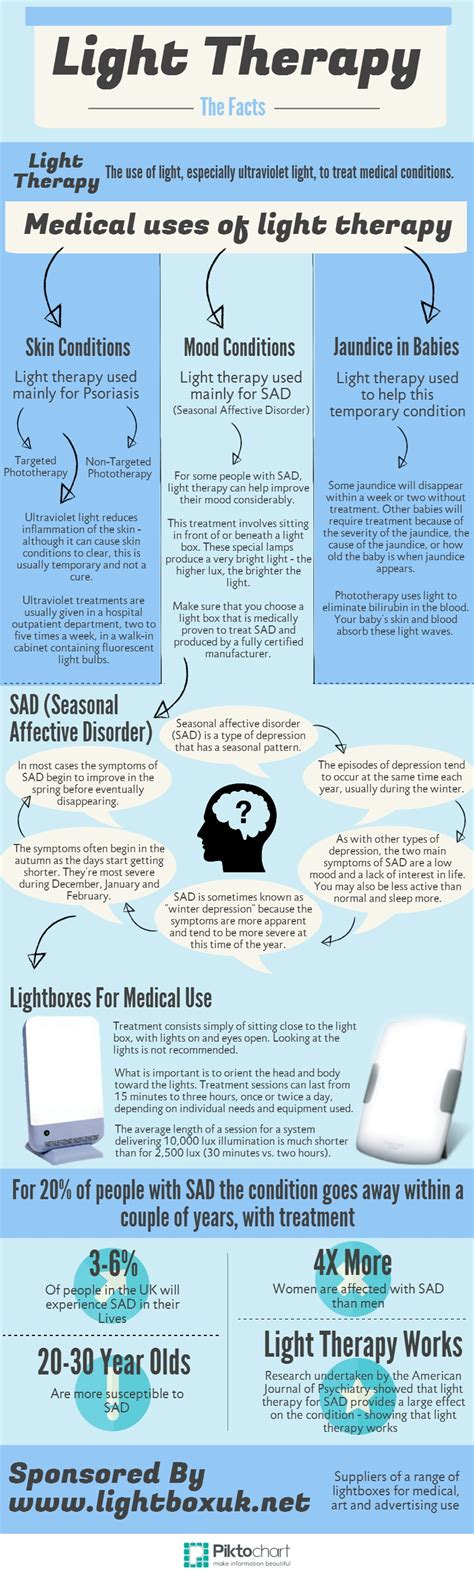 light therapy for seasonal affective disorder a review of efficacy light therapy information